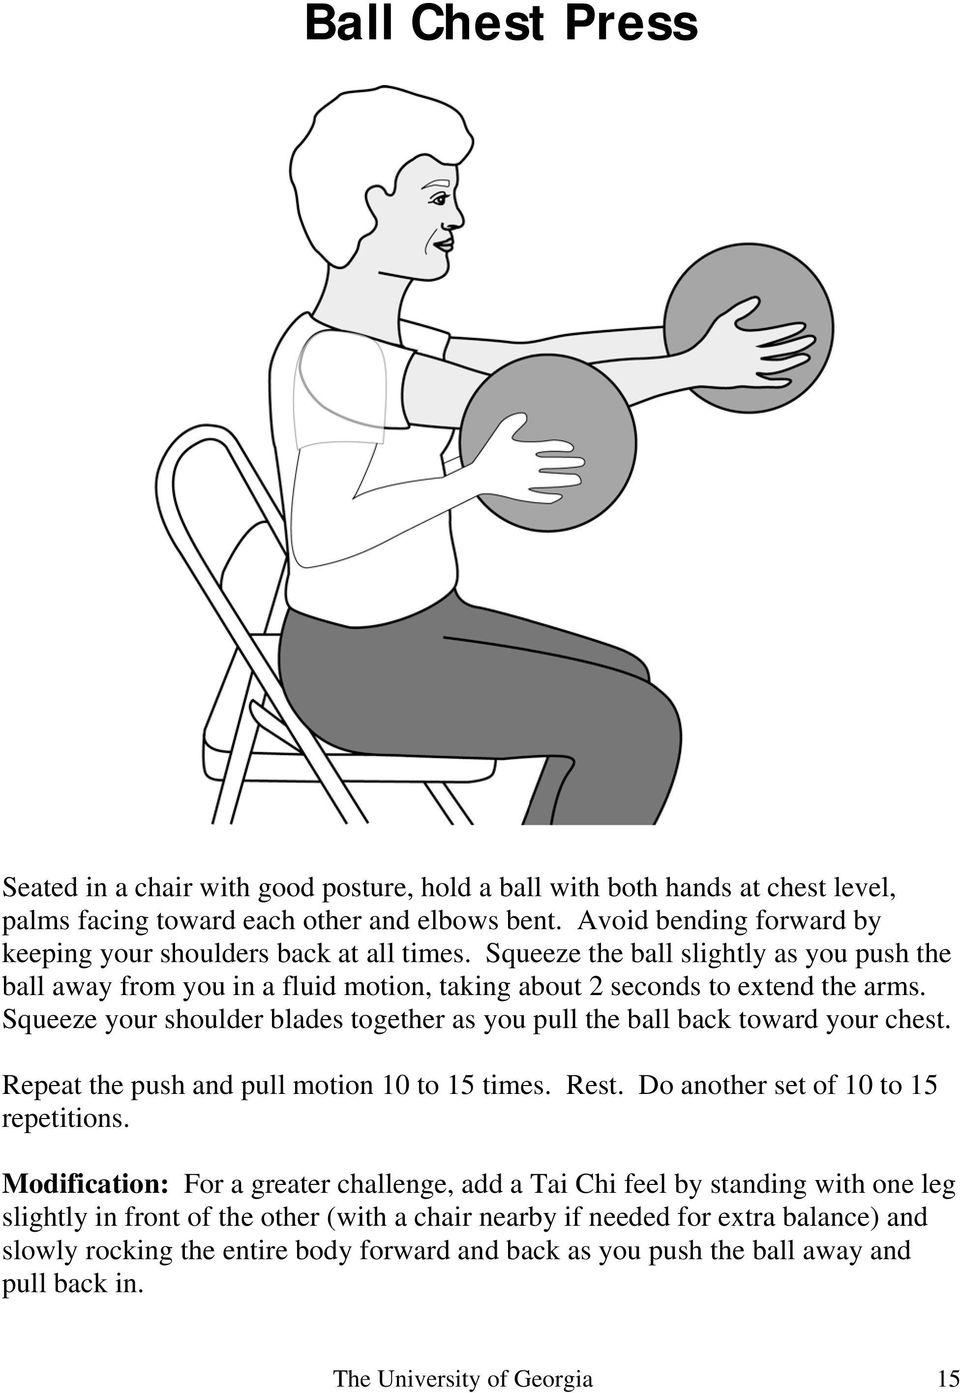 Squeeze your shoulder blades together as you pull the ball back toward your chest. Repeat the push and pull motion 10 to 15 times. Rest. Do another set of 10 to 15 repetitions.